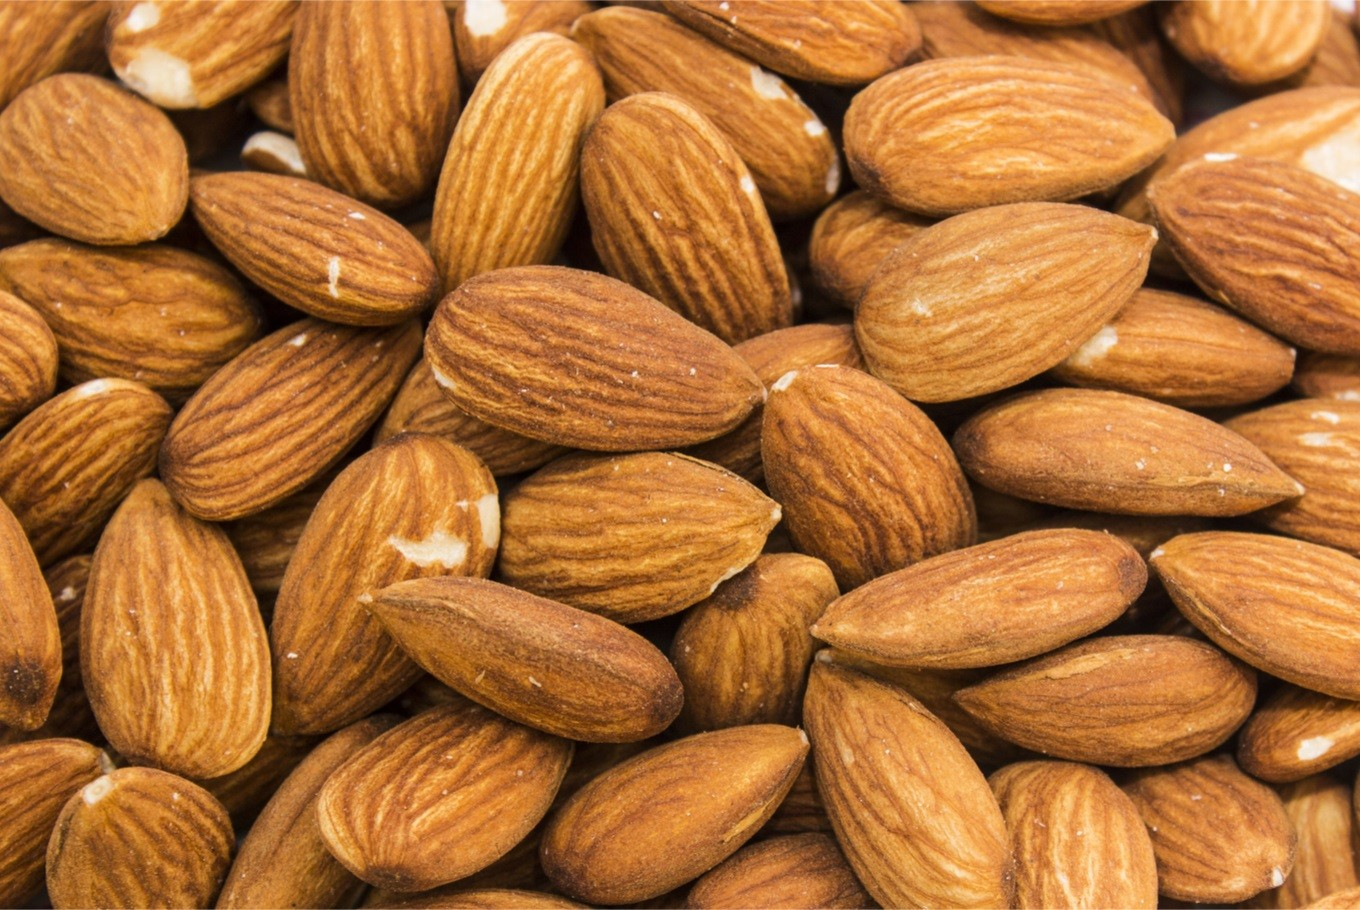 Certain Nuts May Help Ward Off Return Of Colon Cancer Study Health The Jakarta Post